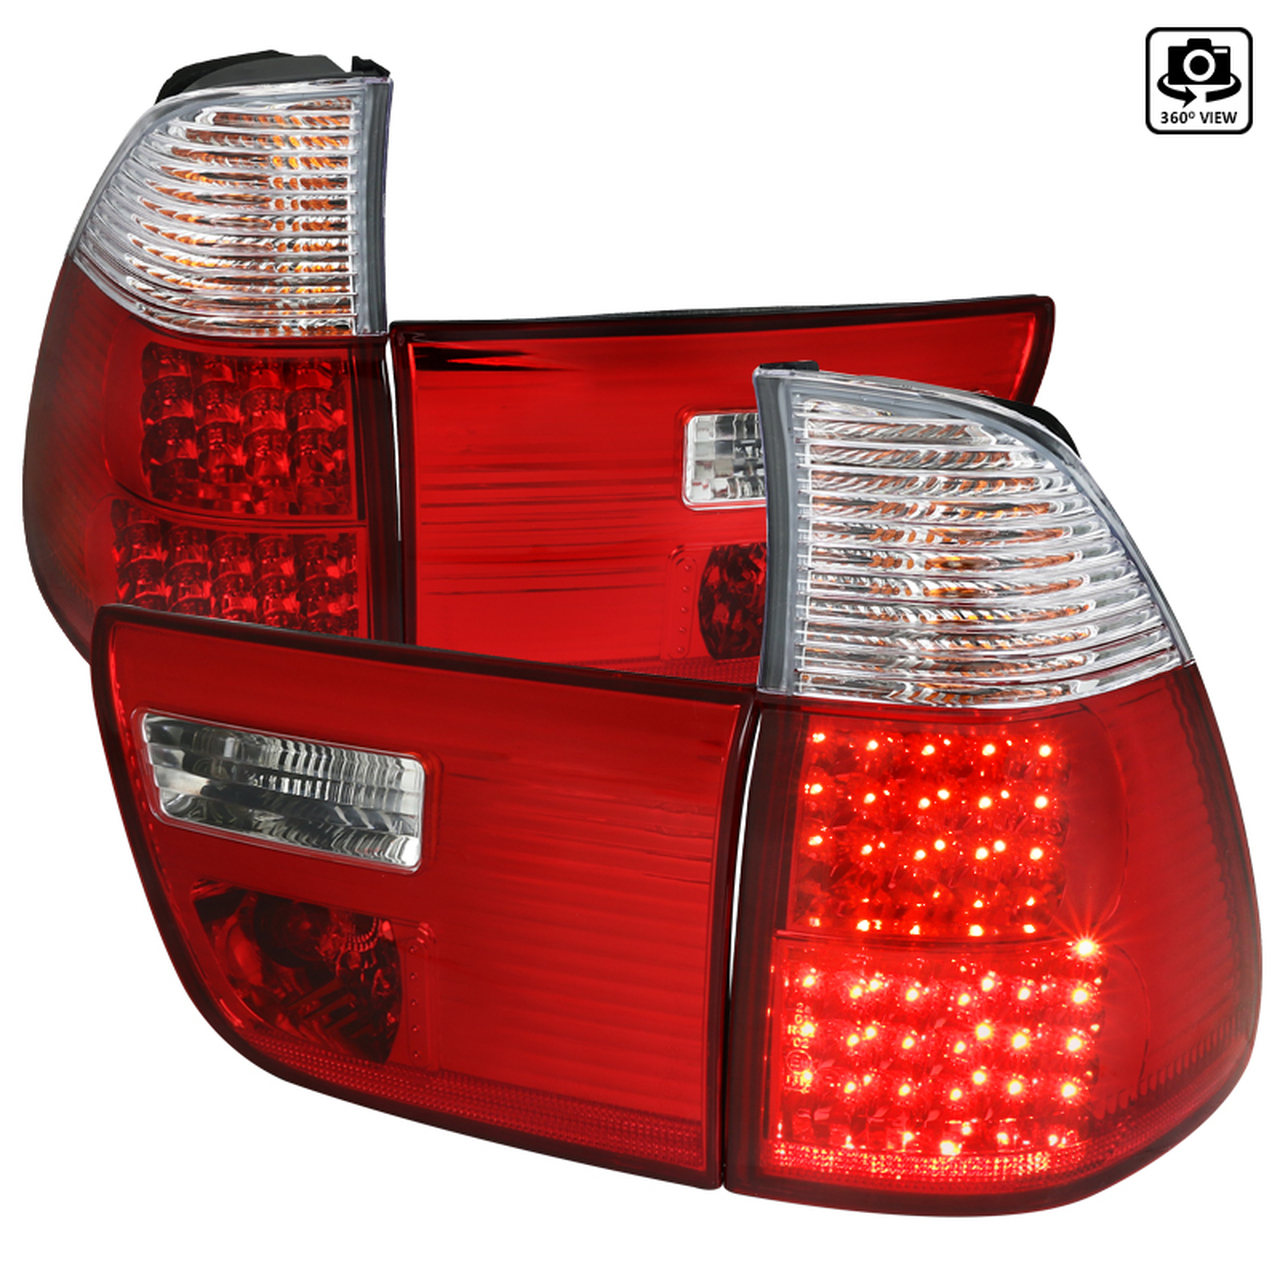 Spec-D Tuning Red LED Tail Lights - Spec-D Tuning LT-X500RLED-OZ